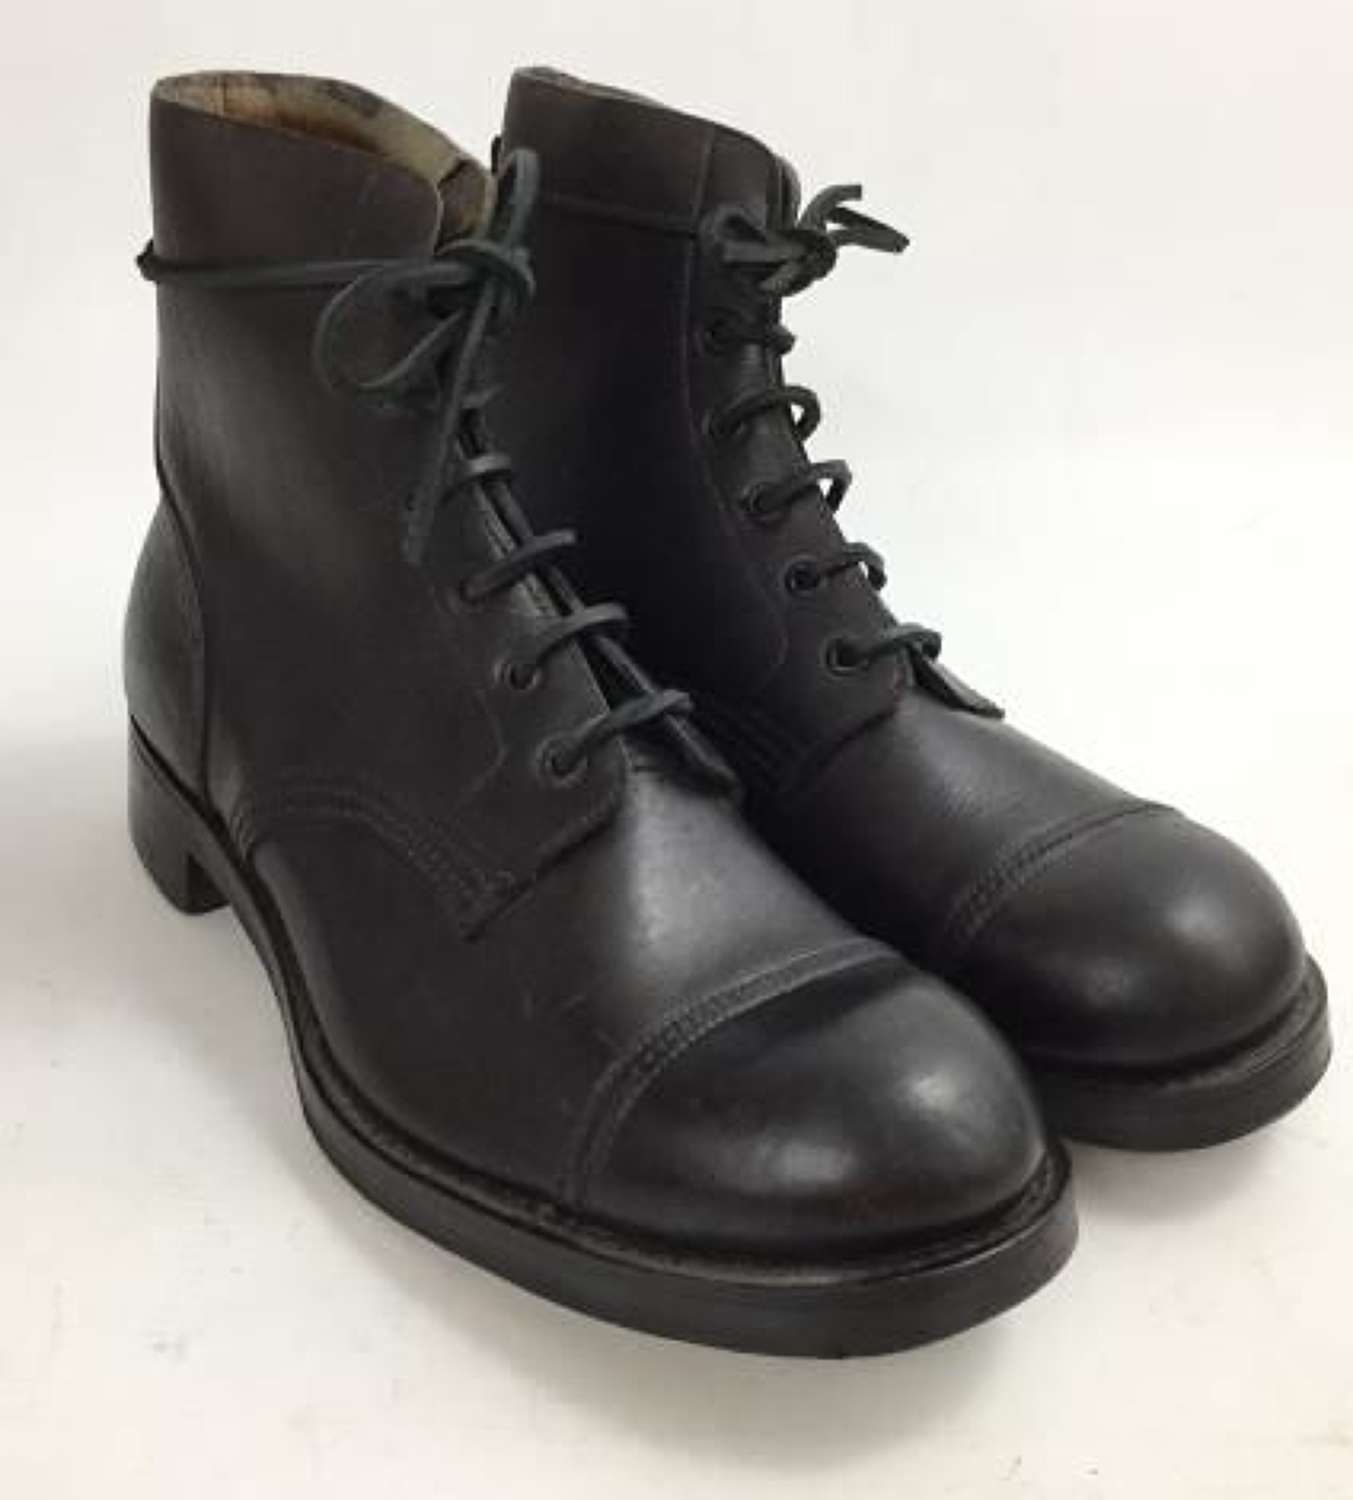 Original 1945 Dated Boots by 'Crockett & Jones' - Size 9